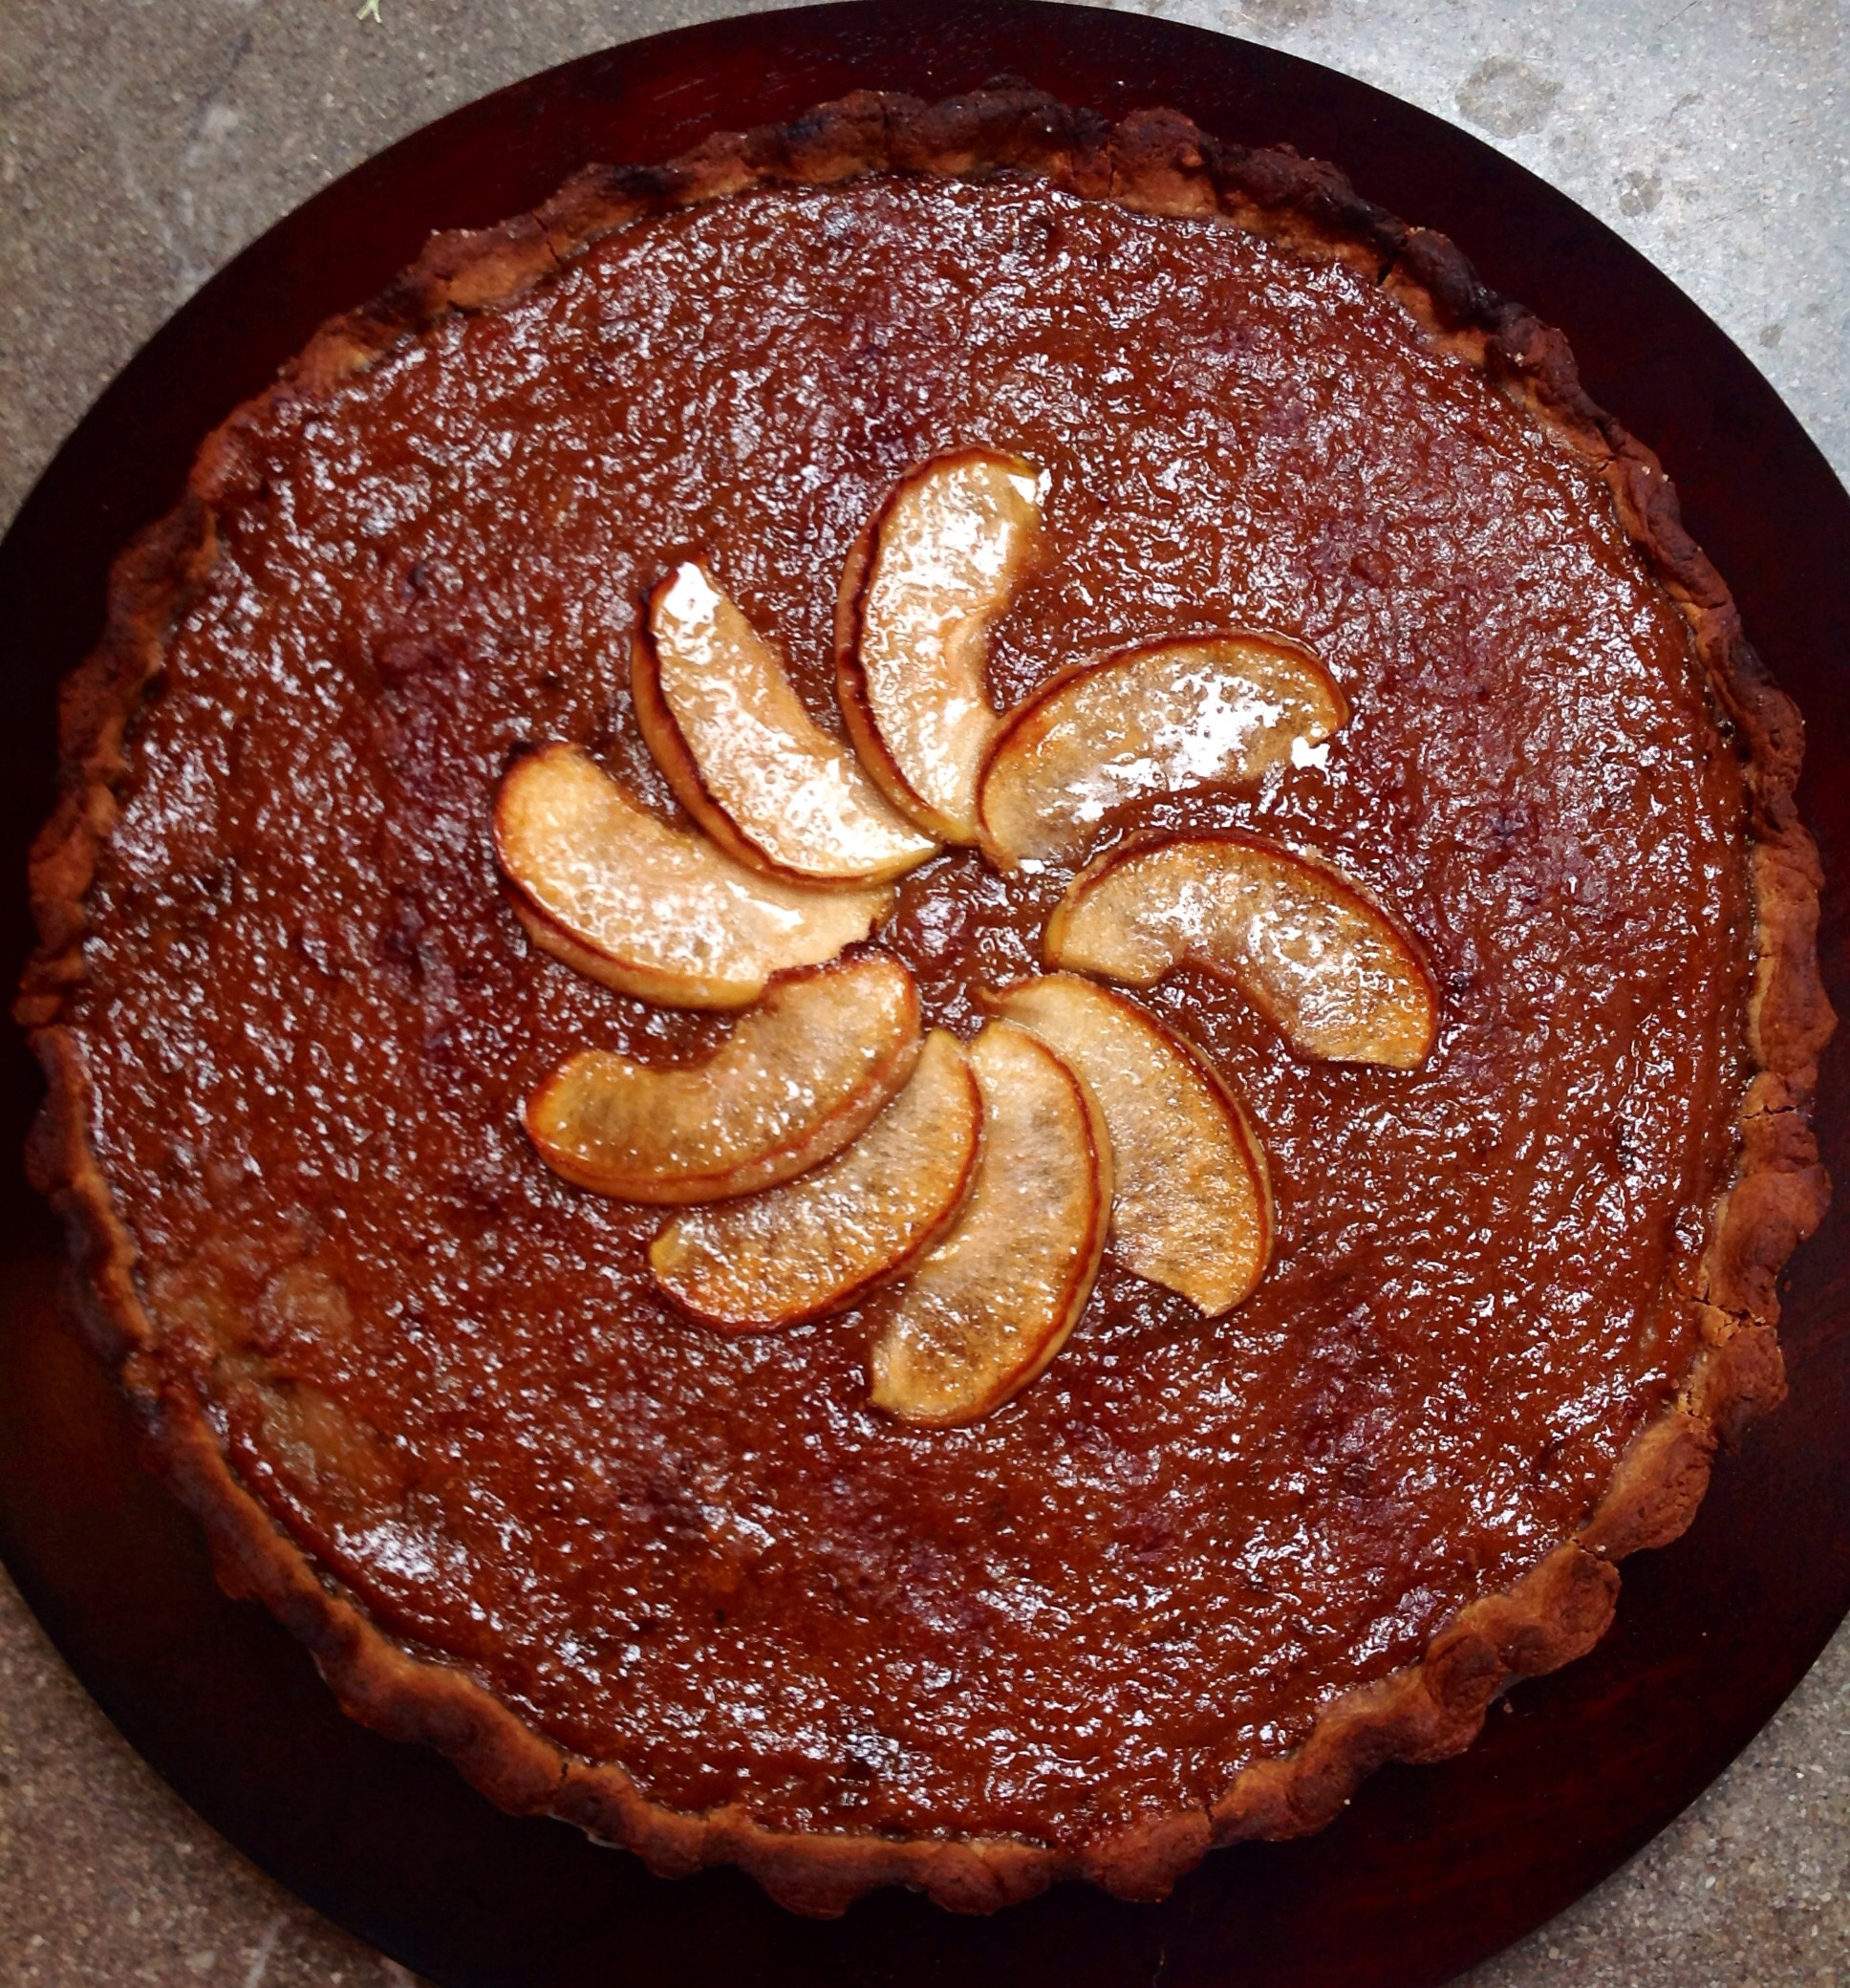 Vegan Chestnut flour Tart with Apple, Plums and Cinnamon Preserve, Caramelized Apples